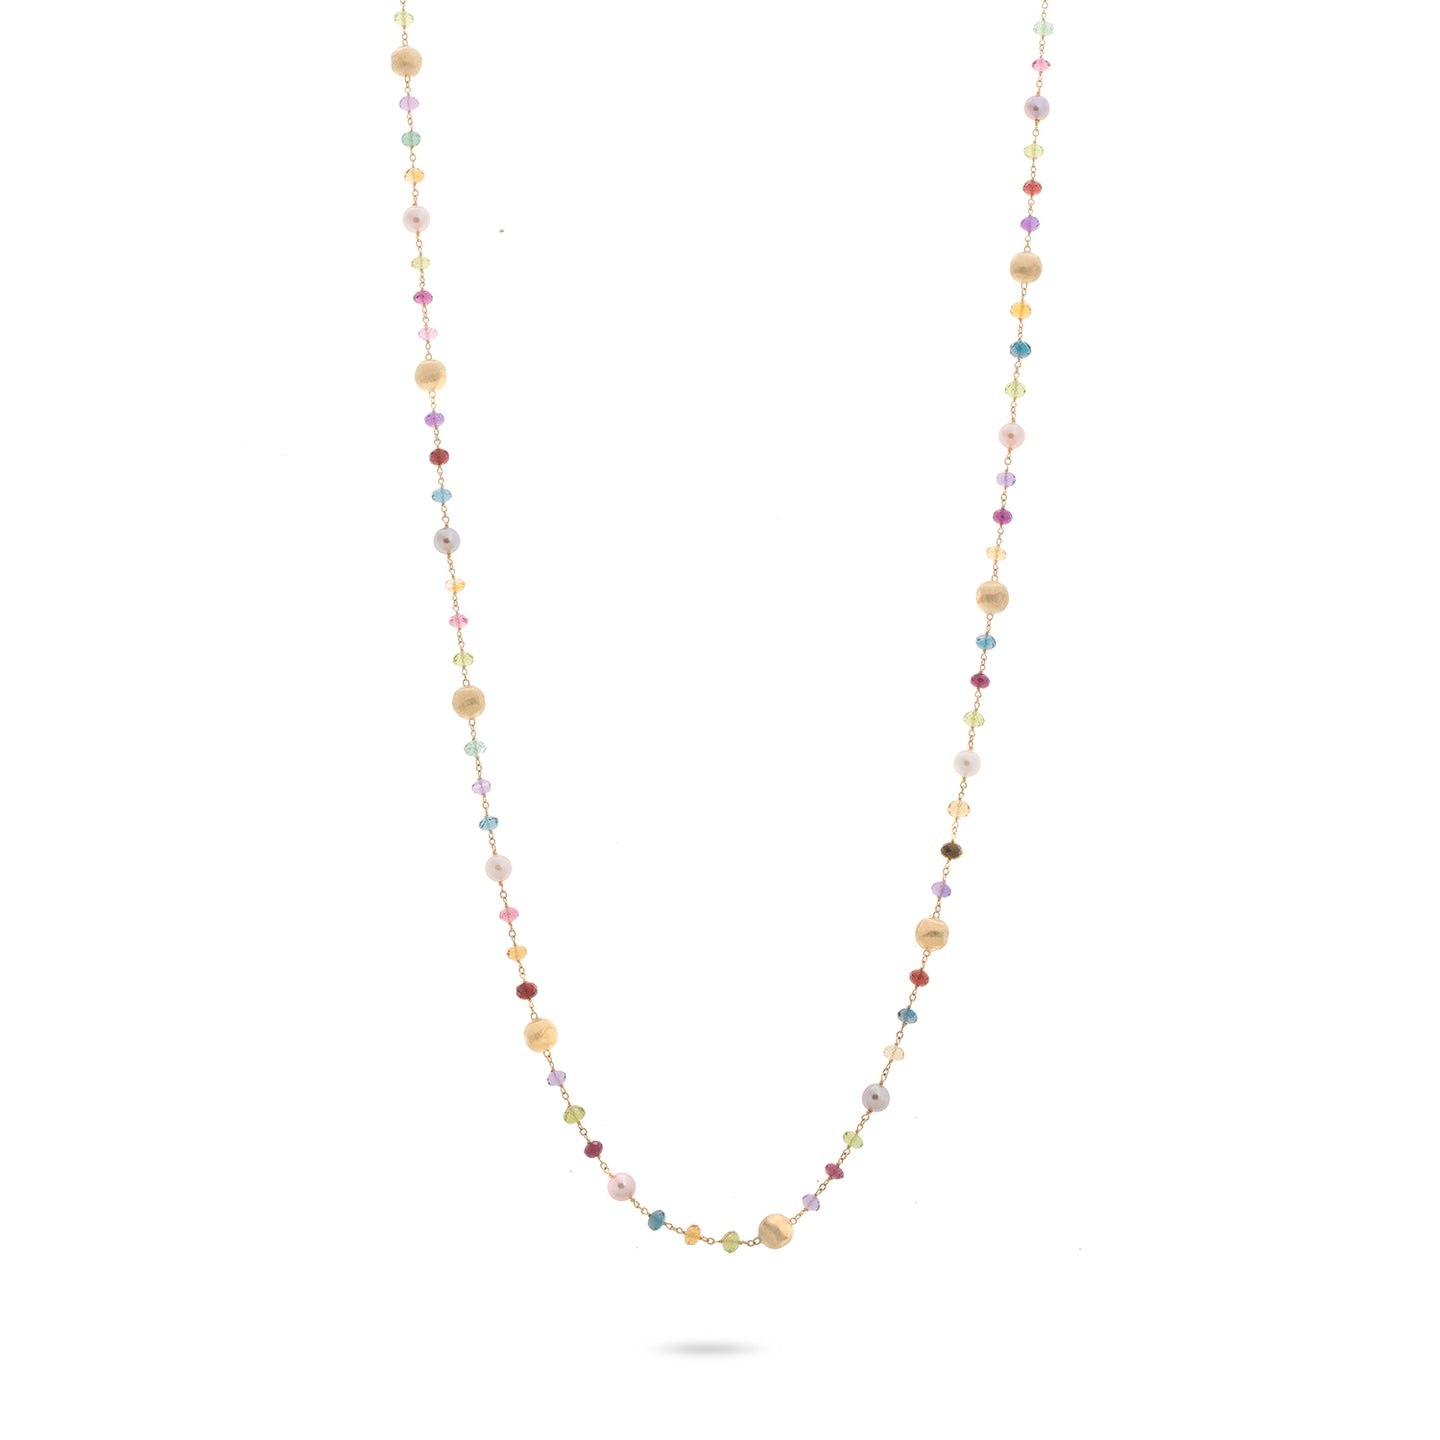 Marco Bicego Africa 18K Yellow Gold Mixed Gemstone and Freshwater Pearl Sautoir Necklace